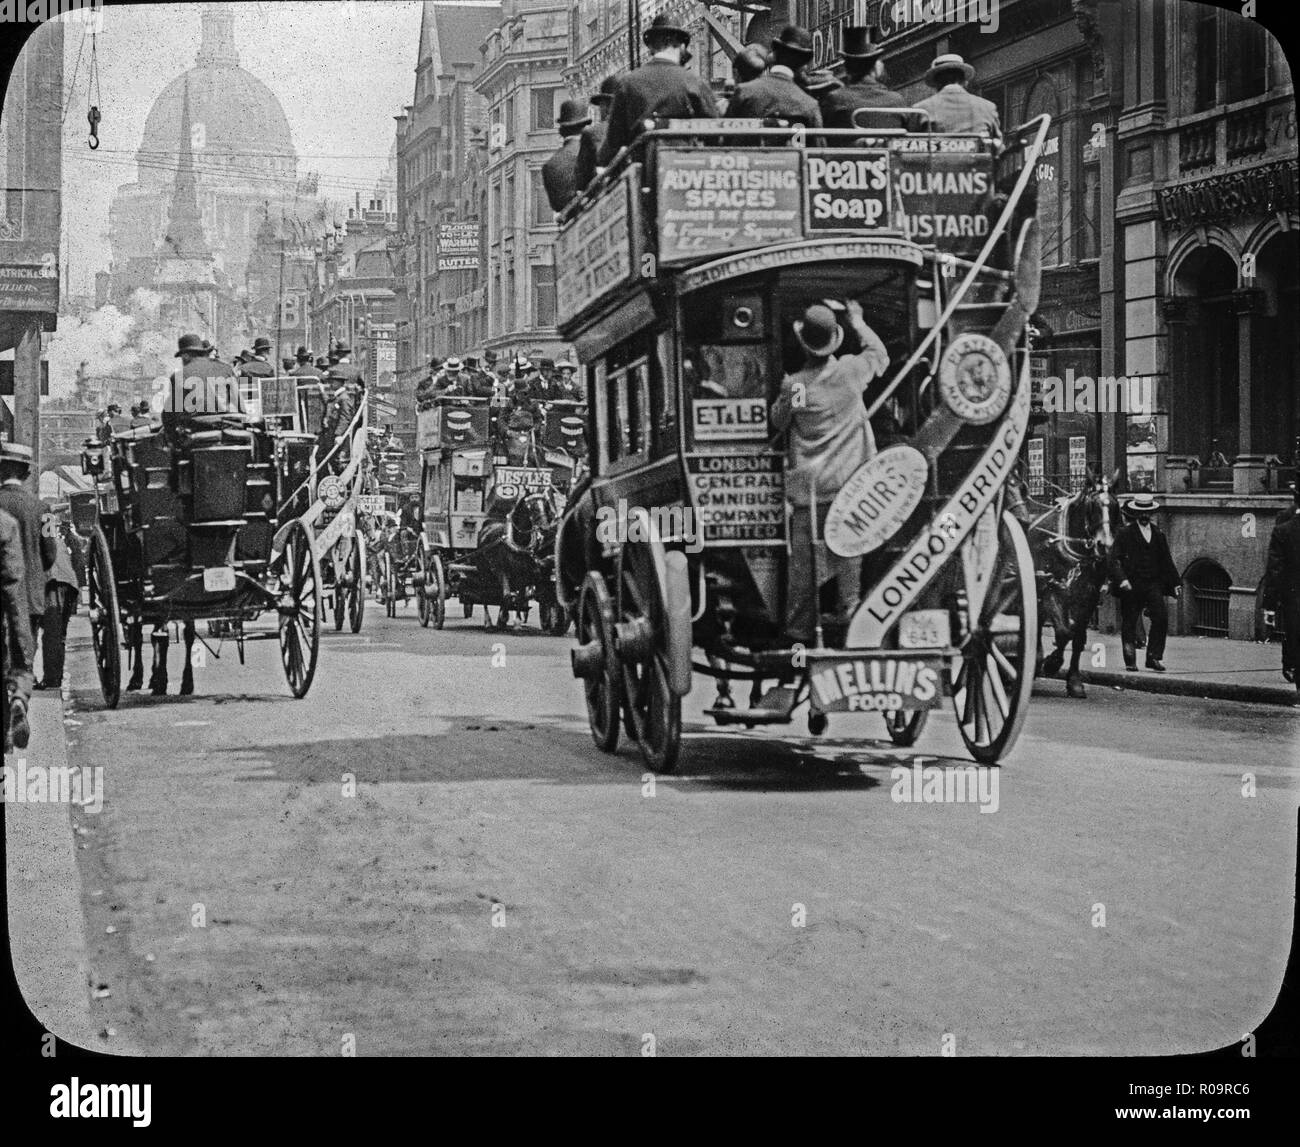 Late 19th century Victorian black and white photograph taken on the streets of London, showing horse drawn omnibuses, covered on adverts,  carrying many passengers, plus street crowded with people. Shop signs are also visible. - Stock Image